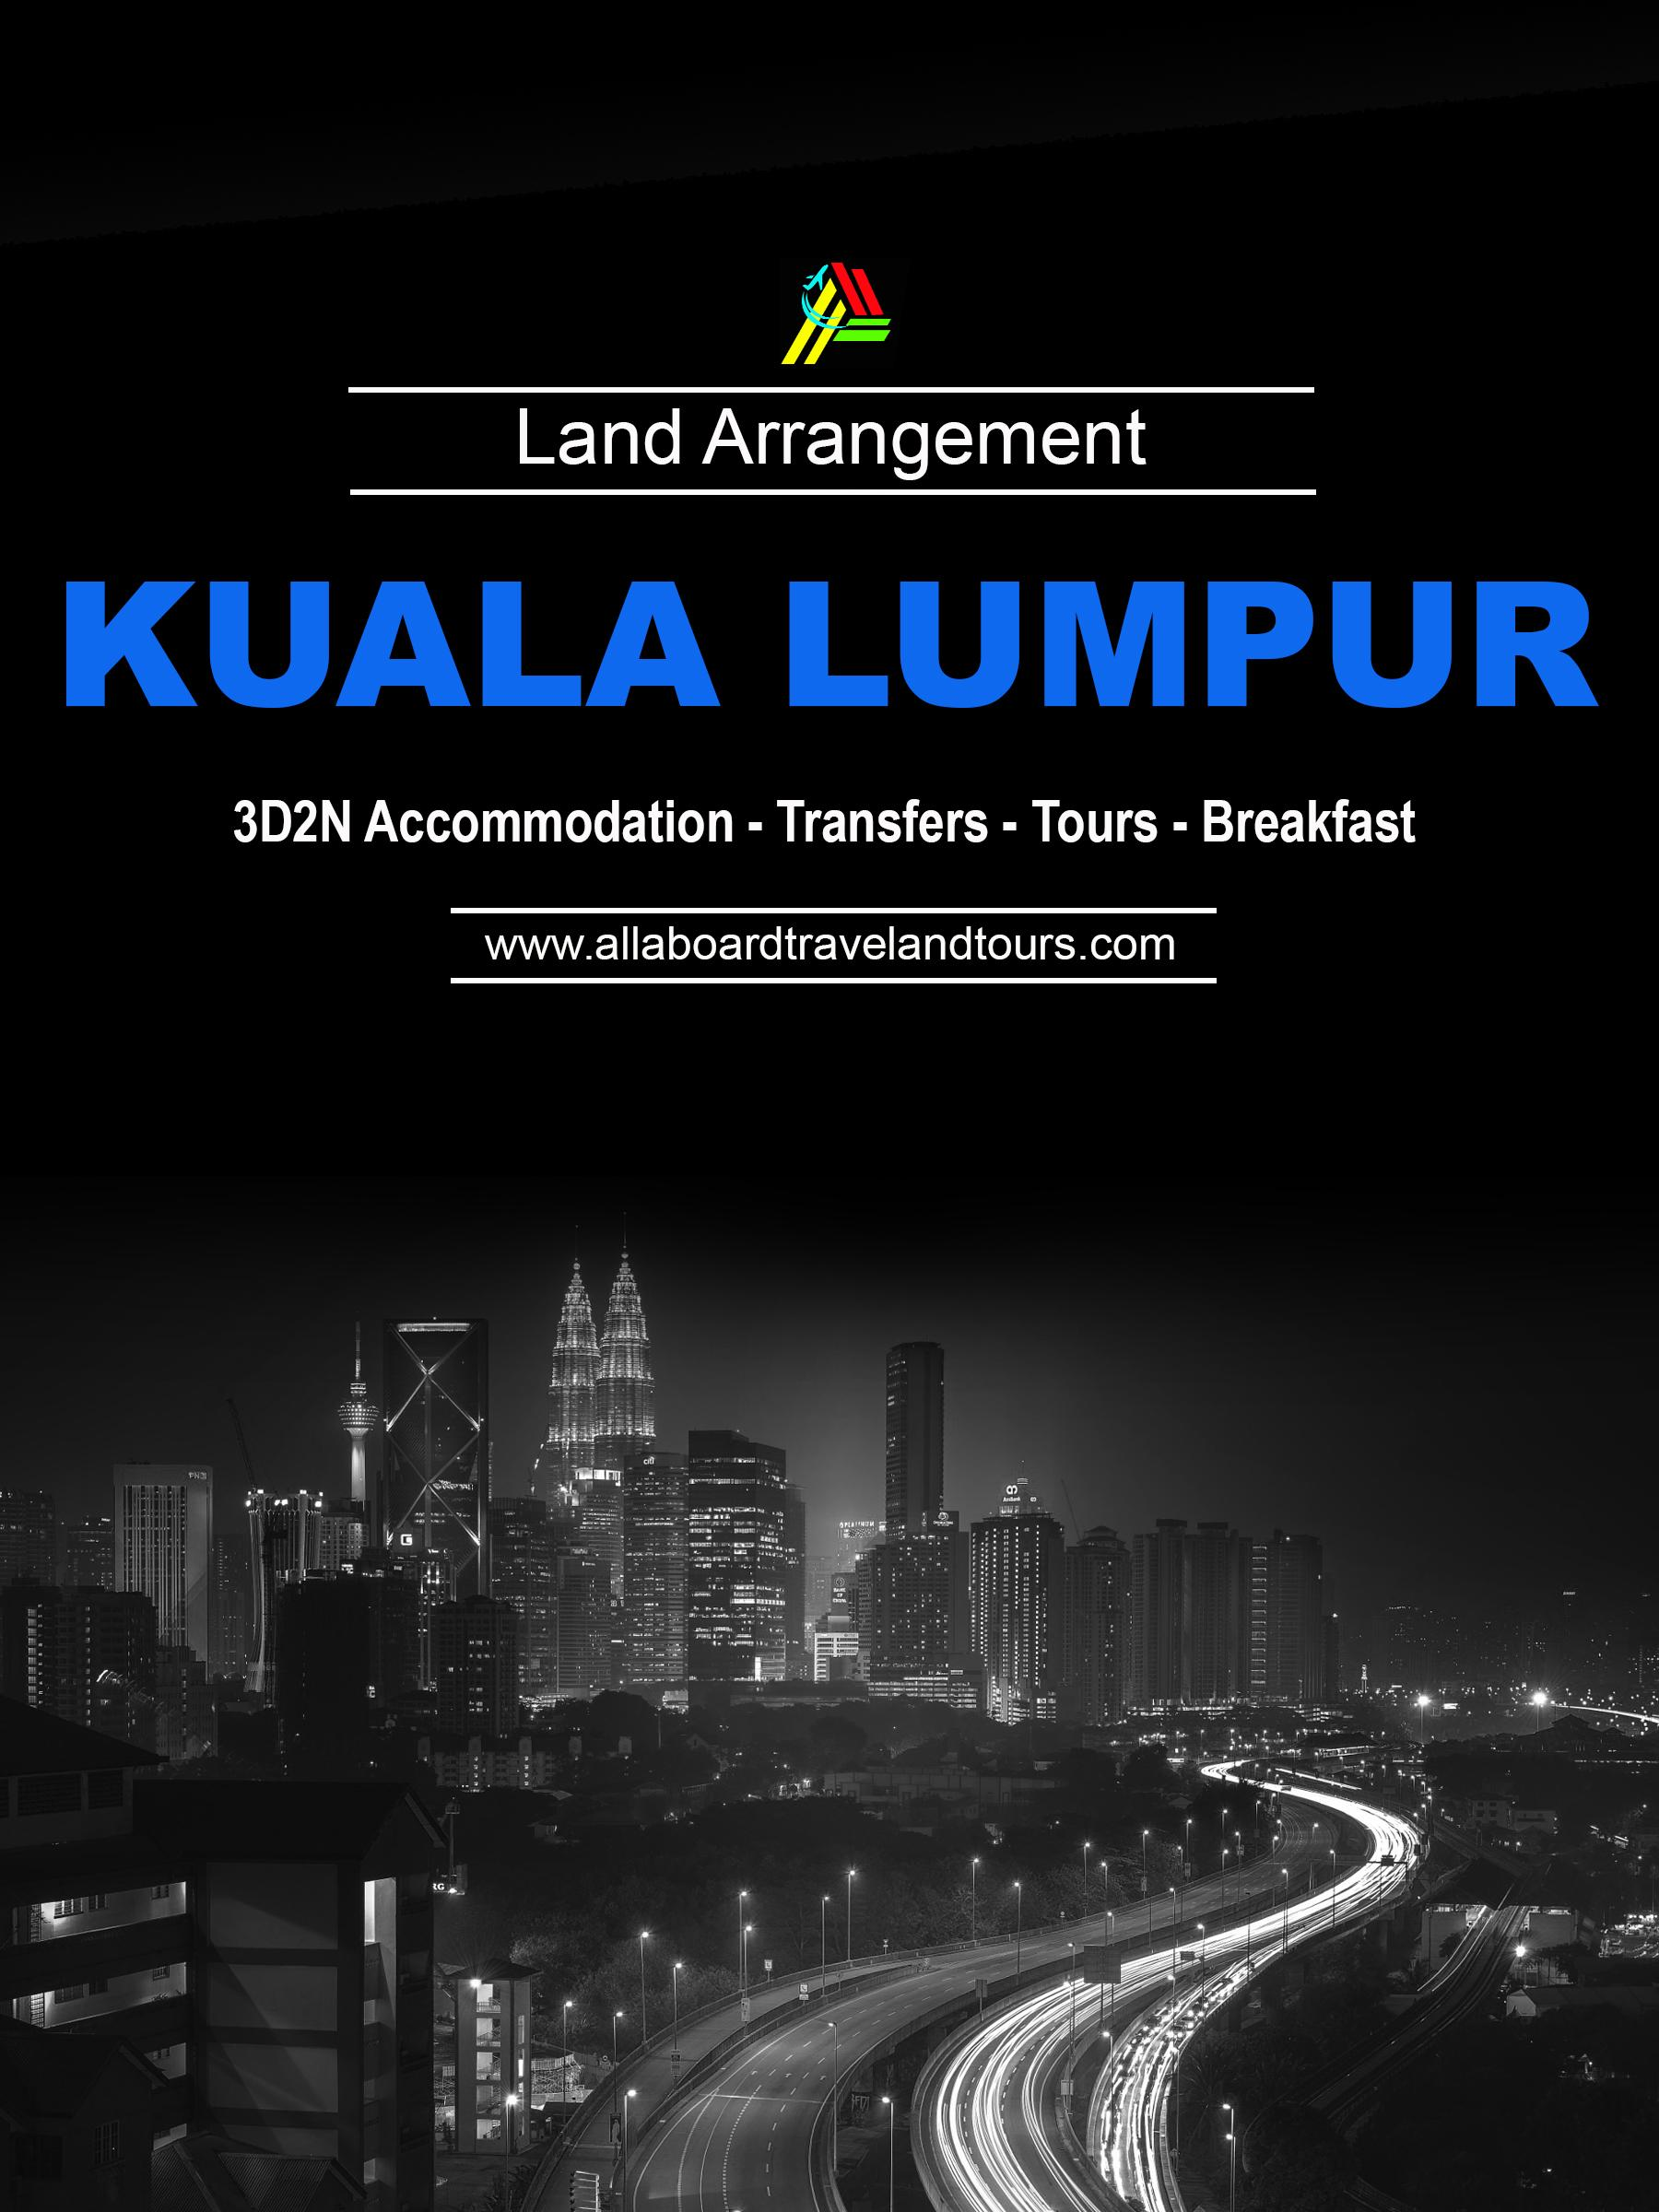 Kuala Lumpur Free And Easy Land Arrangement By All Aboard Travel And Tours.